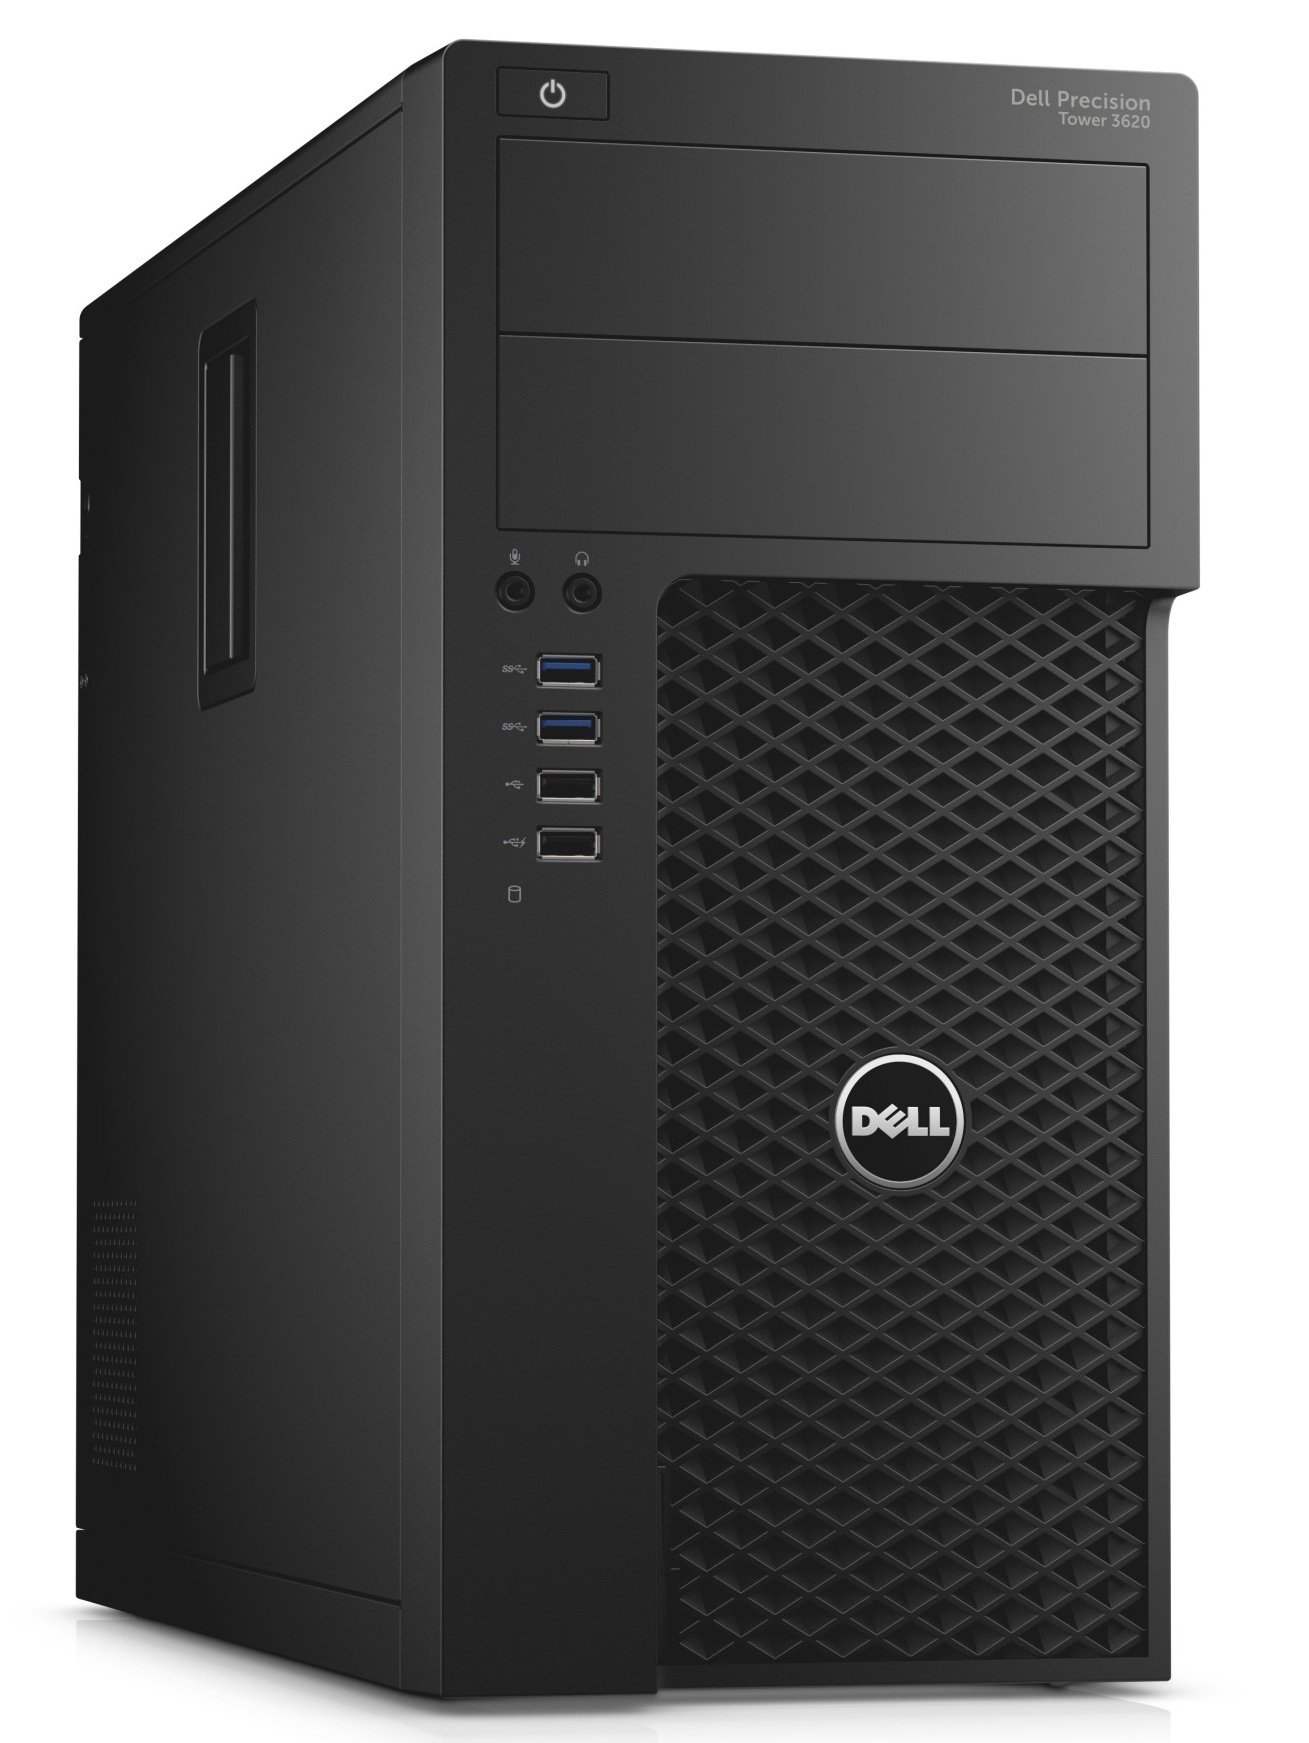 DELL GD1PX PRECISION T3620 3.7GHZ E3-1240V6 MINI TOWER BLACK WORKSTATION